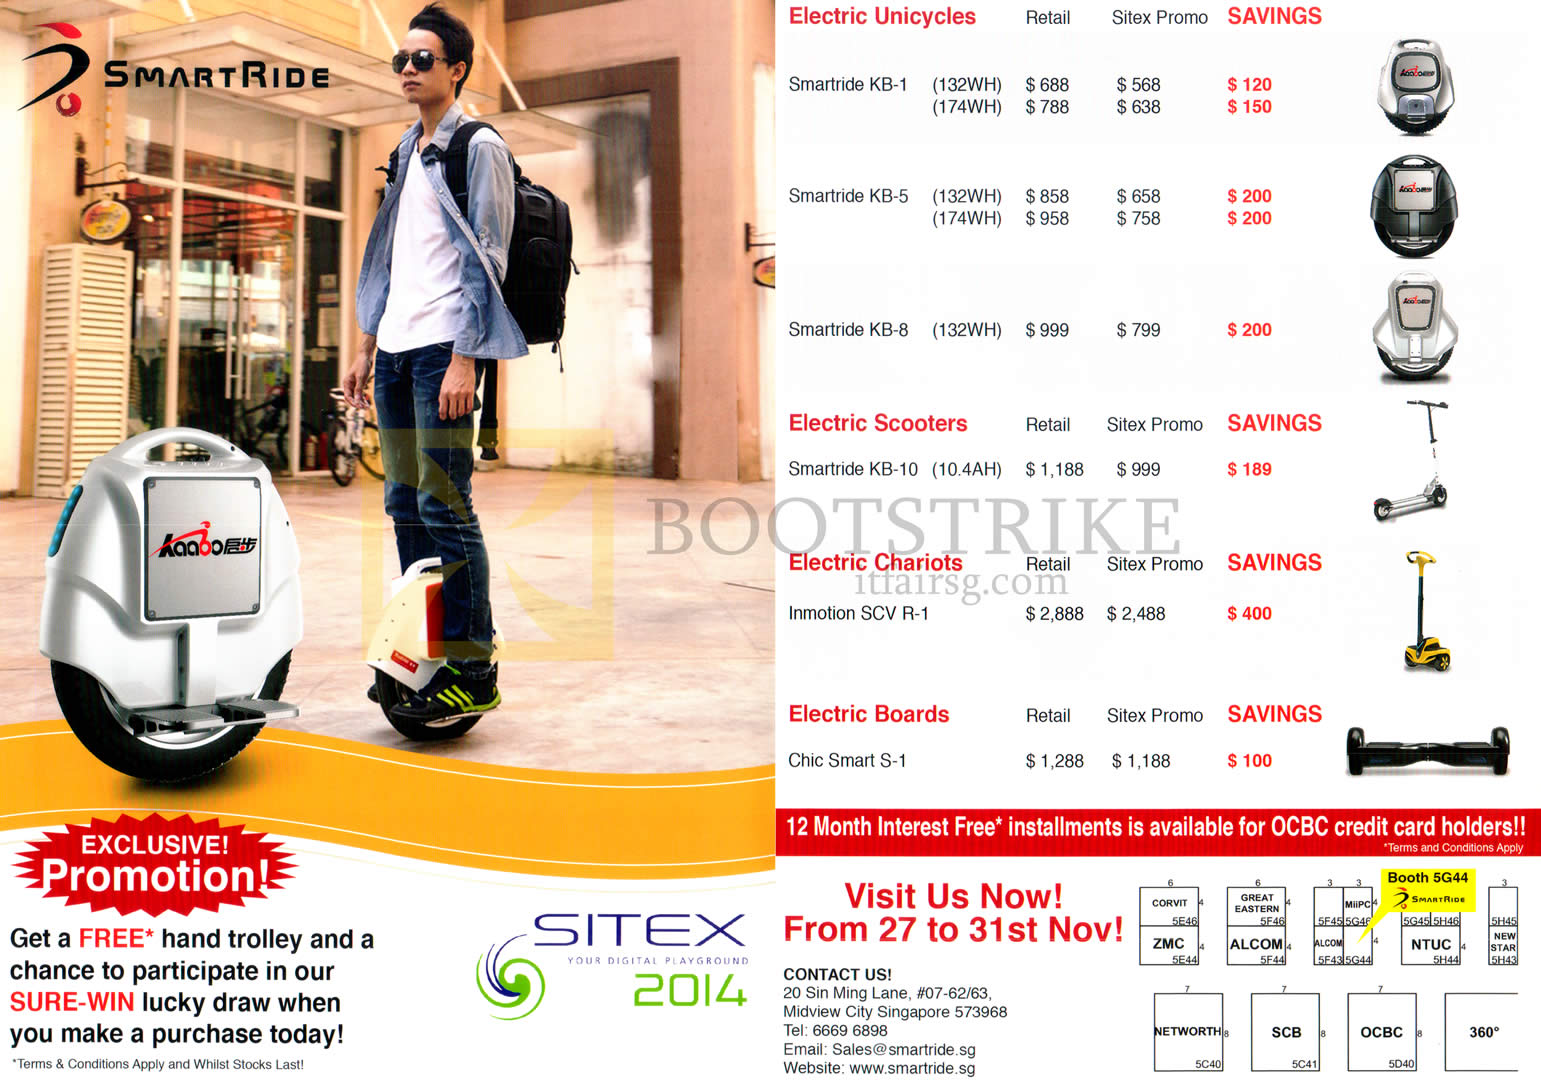 SITEX 2014 price list image brochure of Smartride Motorised Cycle, Electric Unicycles Smartride KB-1, KB-5, KB-8, KB-10, Innovation SCV R-1, Chic Smart S-1